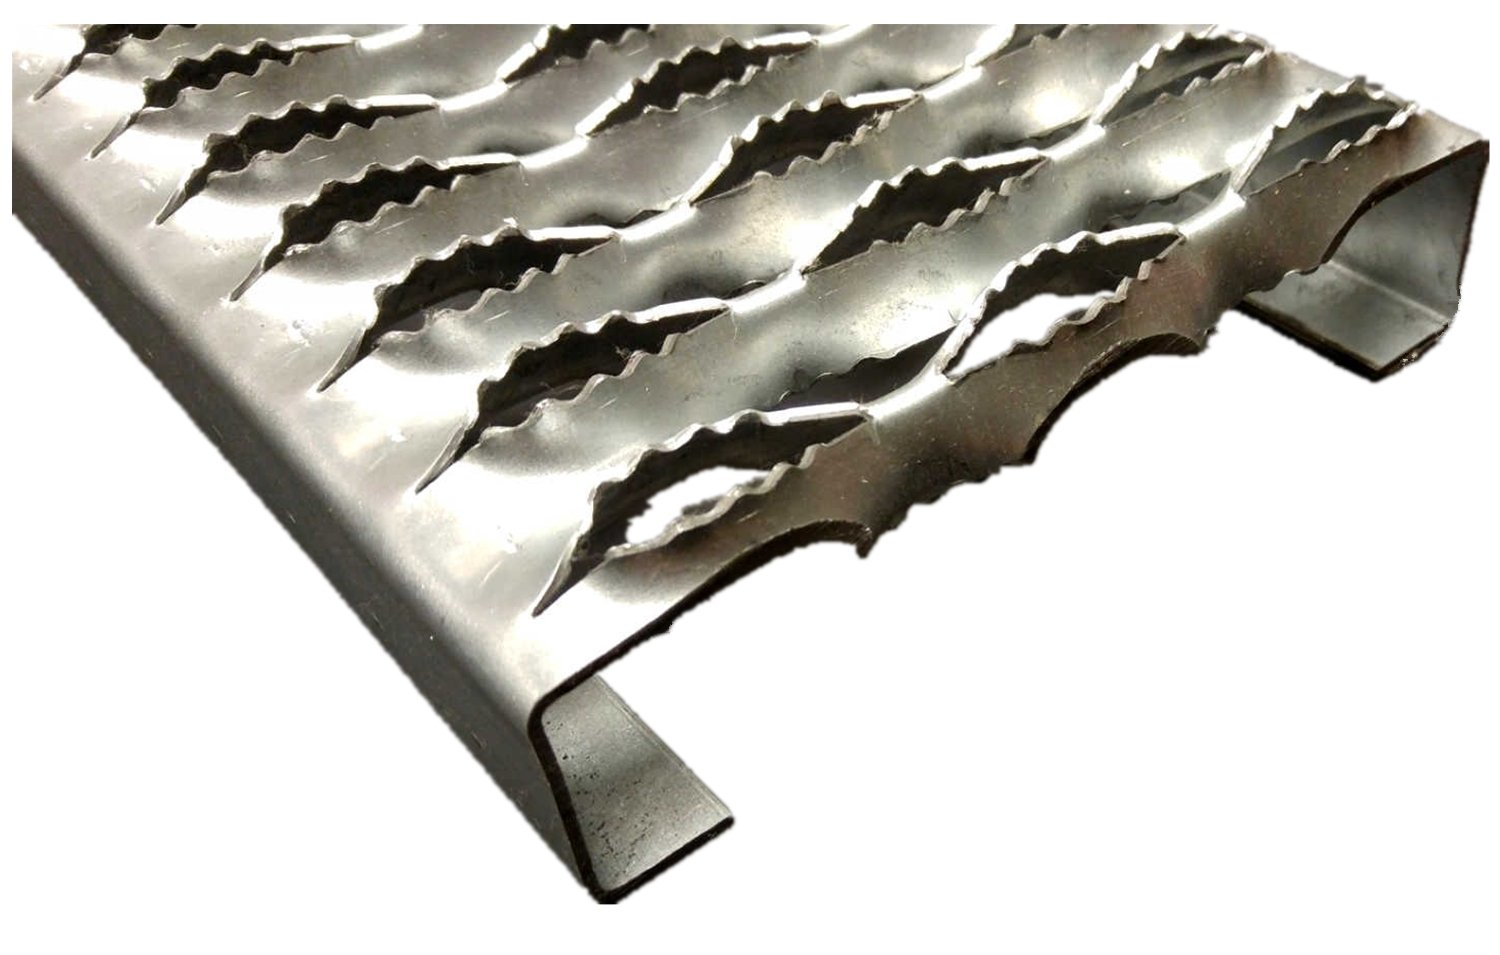 3332012-120 Grip Strut Channel Aluminum 3-Diamond Plank Safety Grating, 120'' Length x 7'' Width x 2'' Depth by Small Parts